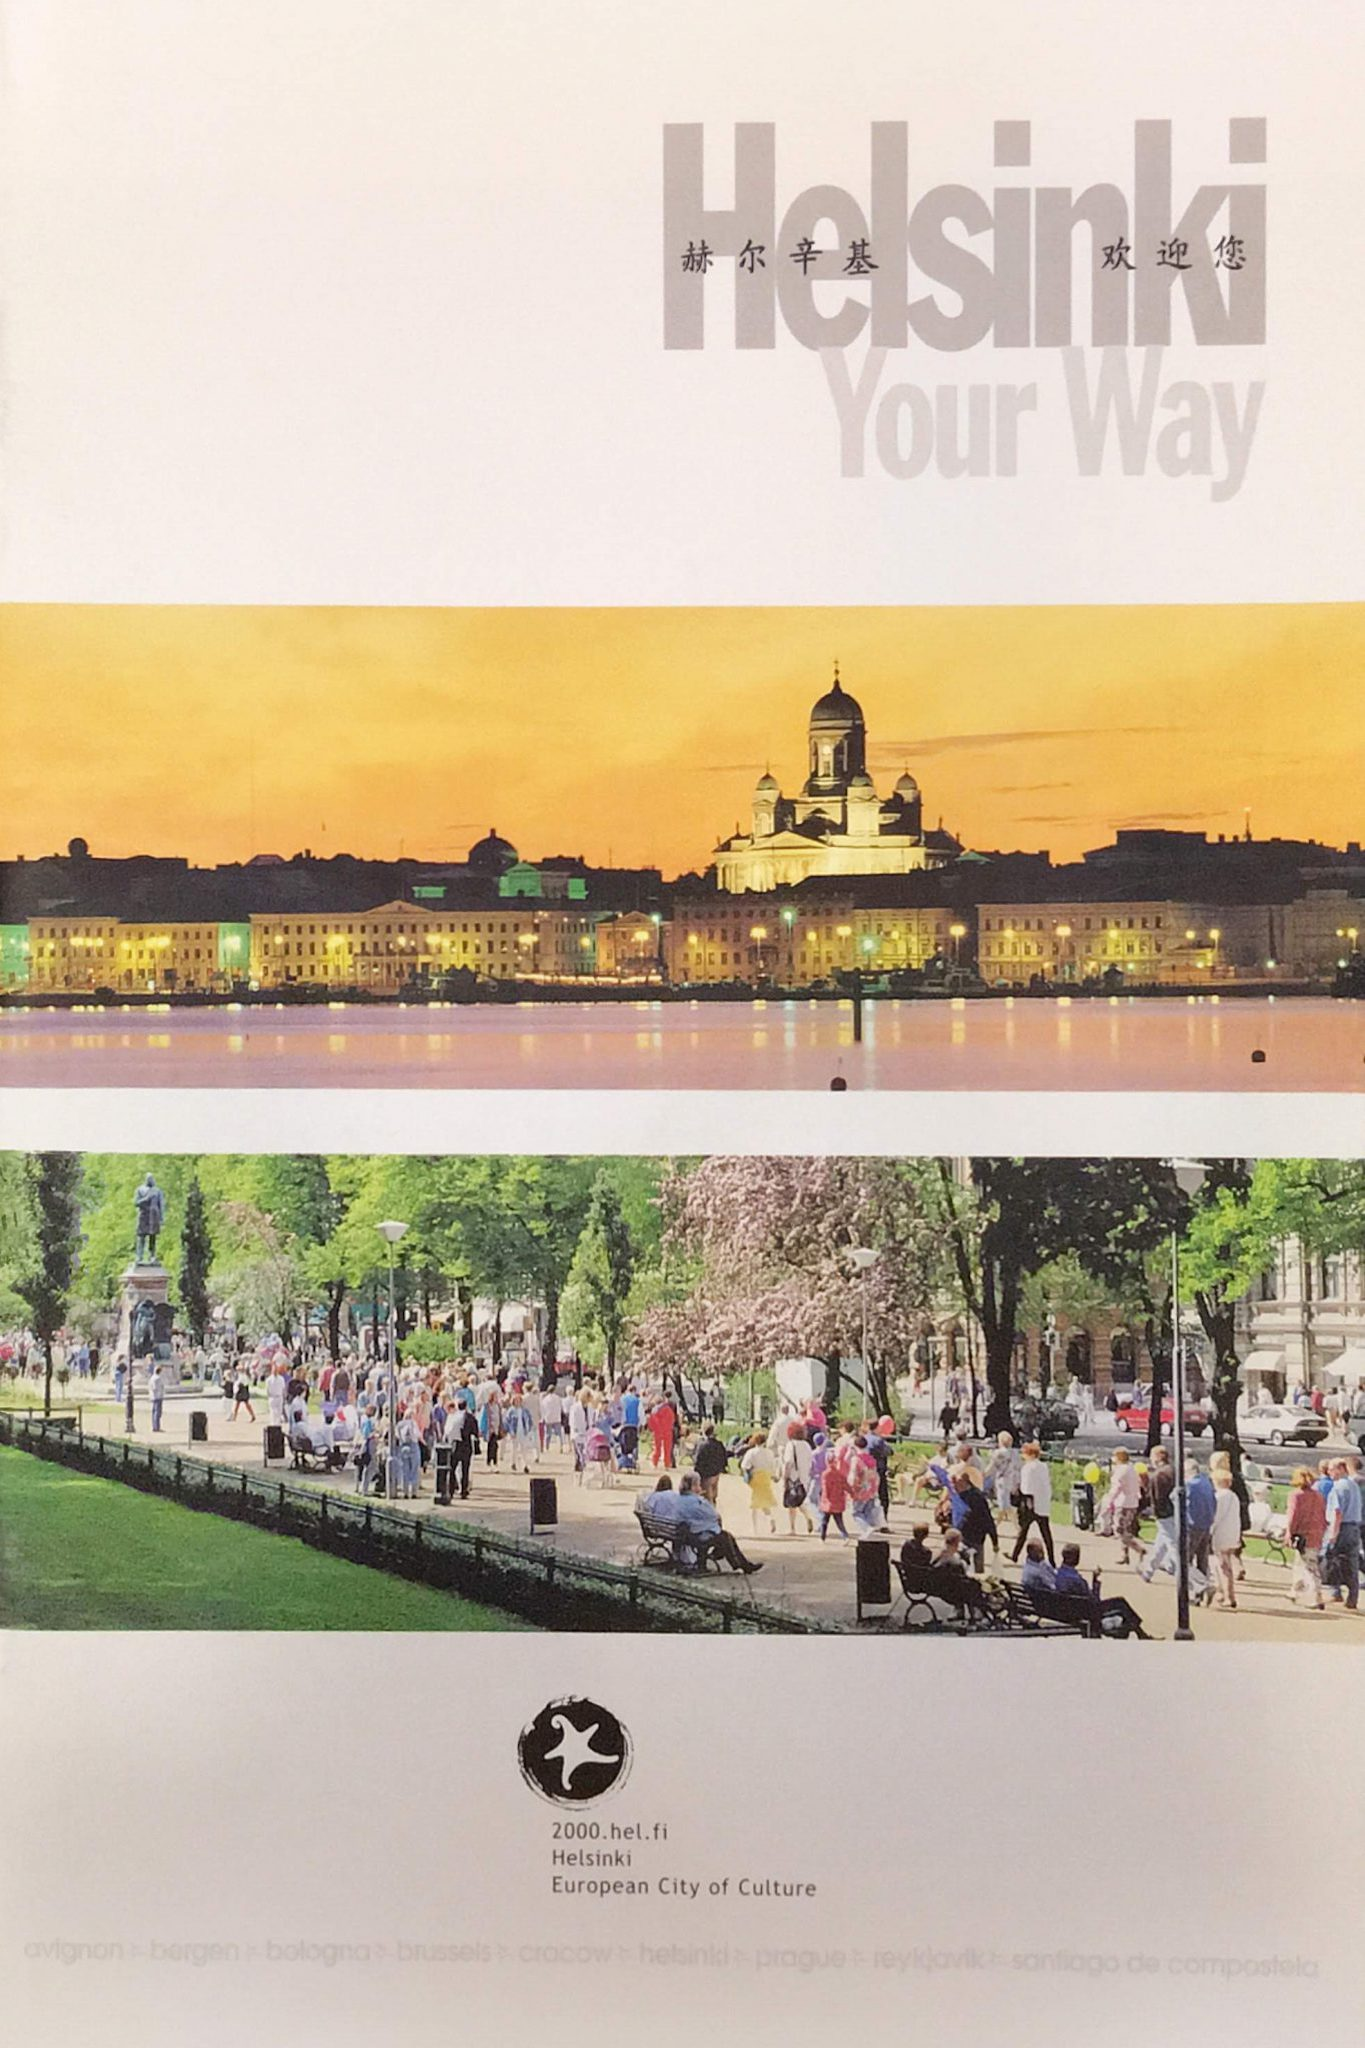 tekway-helsinki-city-travel-guide-6-e1585127003785-1363x2048